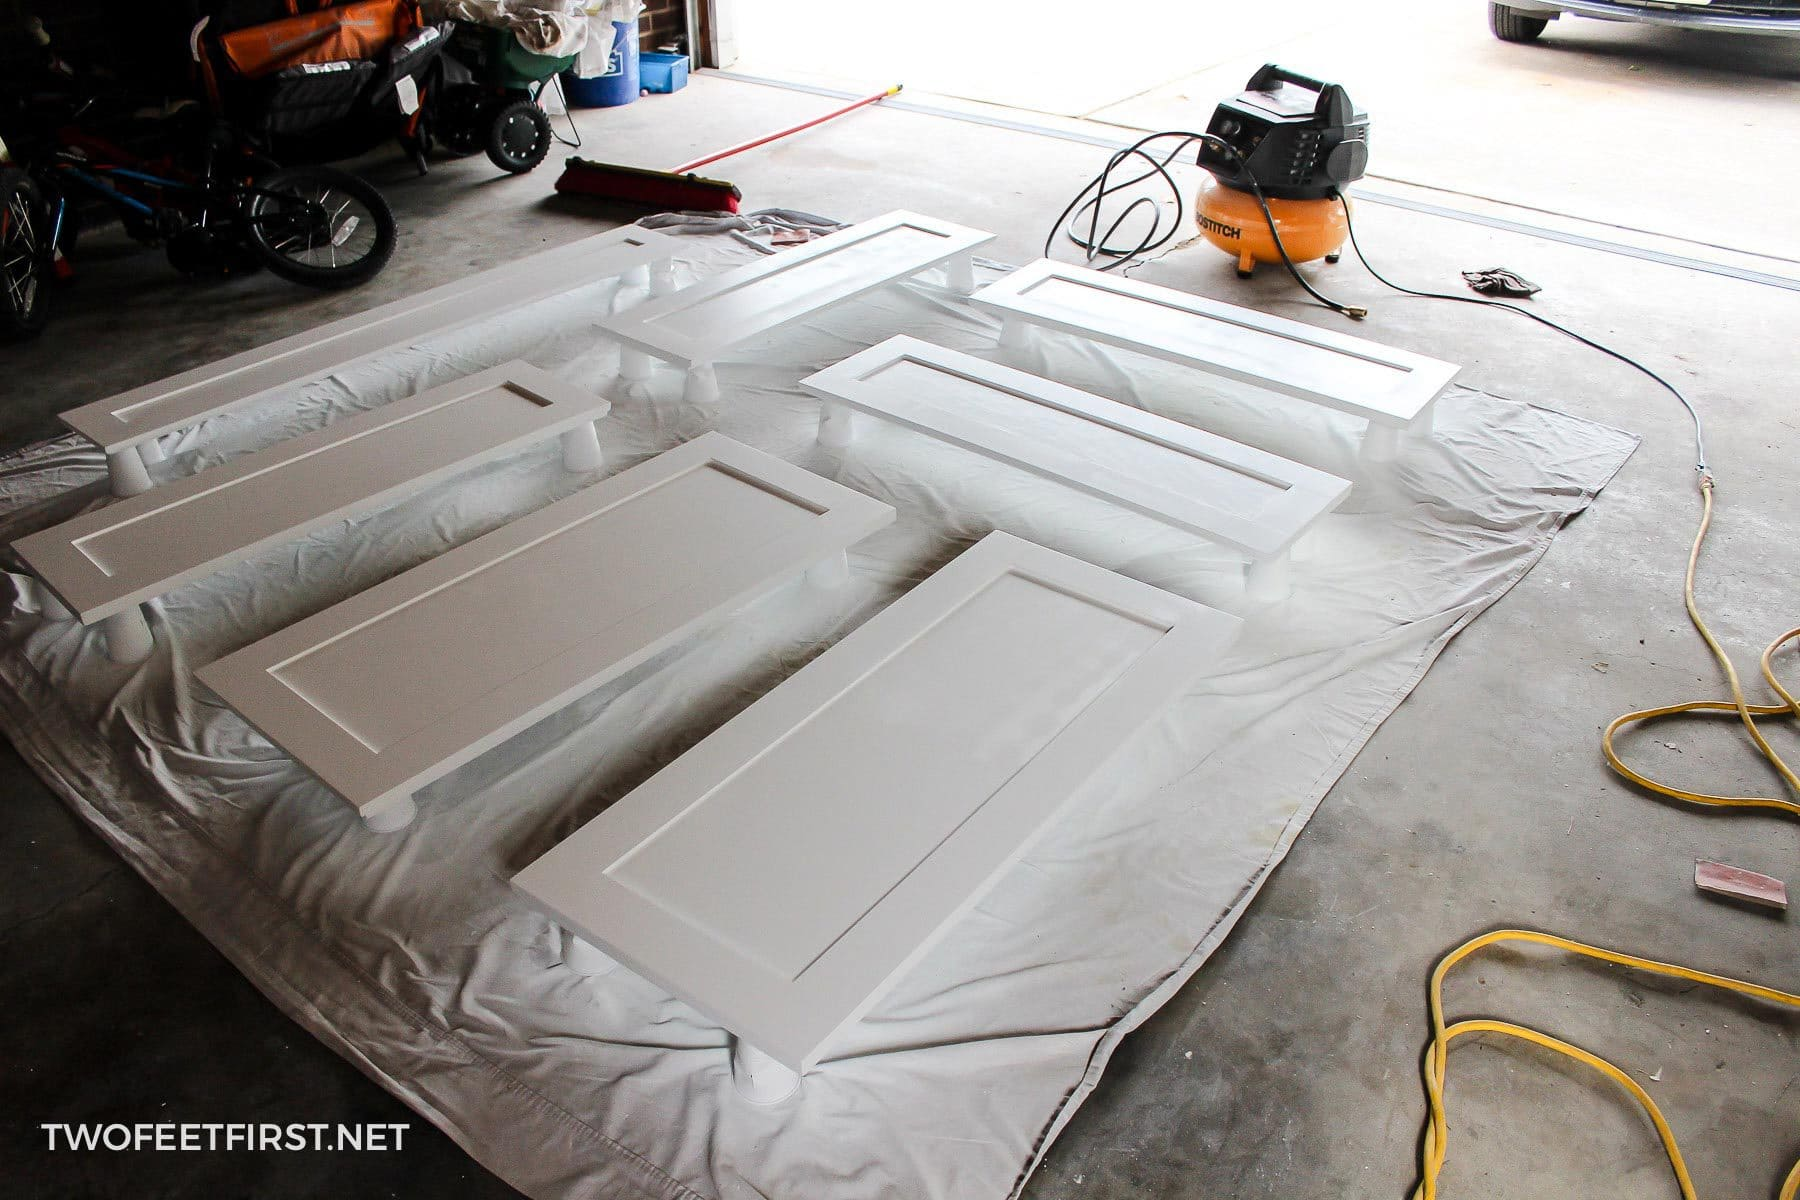 Paint Kitchen Cabinets With A Sprayer, How To Paint Kitchen Cabinets White With A Sprayer